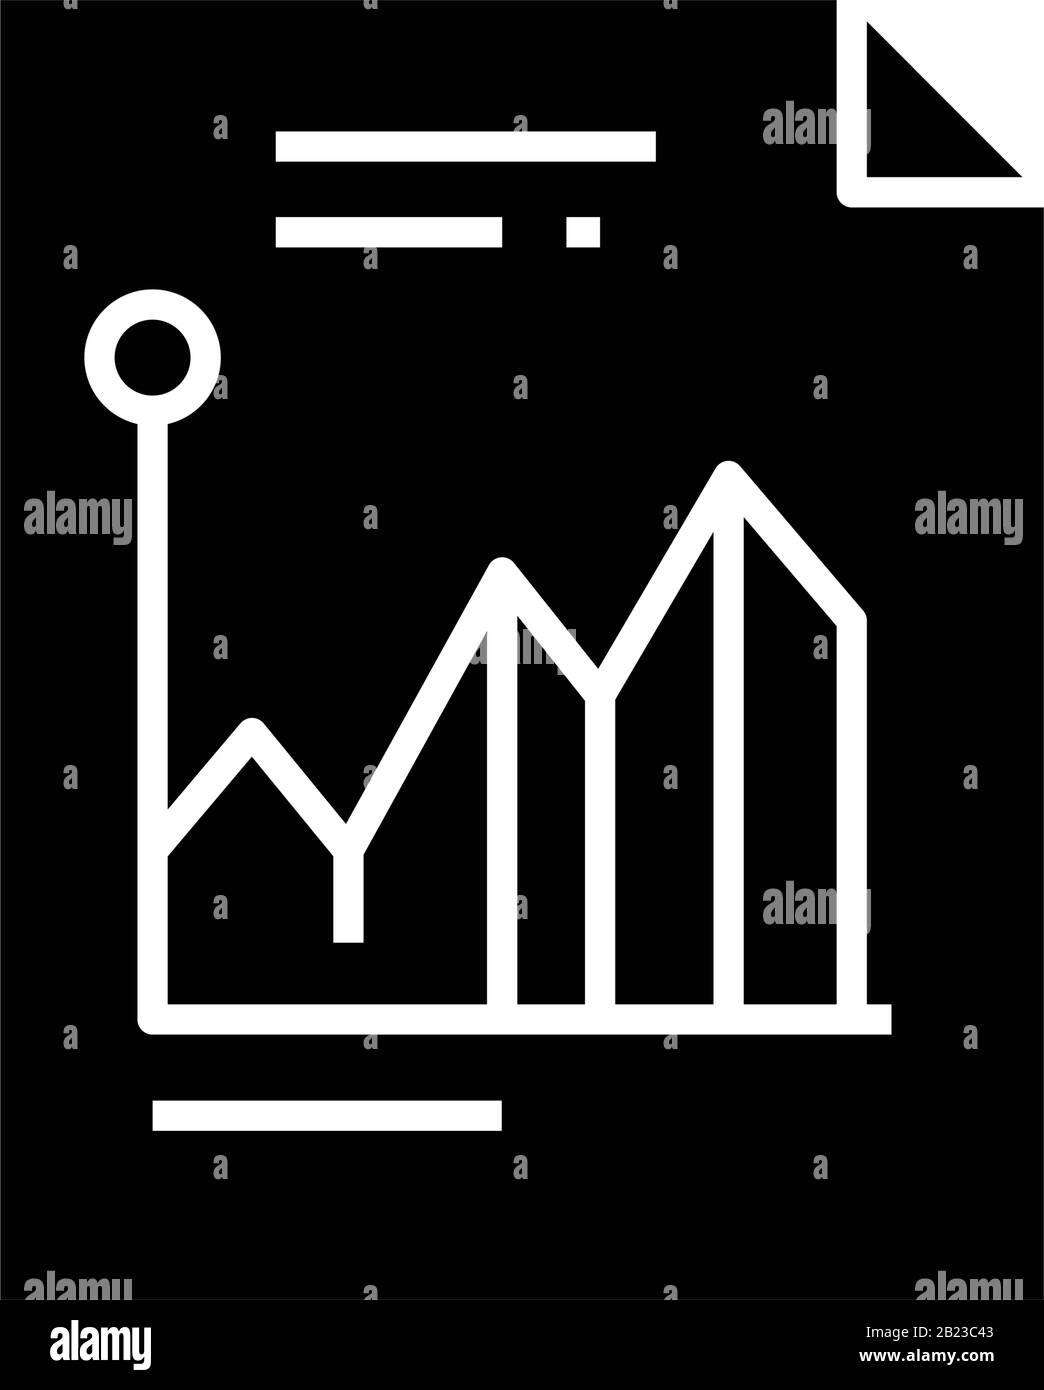 Futures Market Black Icon Concept Illustration Vector Flat